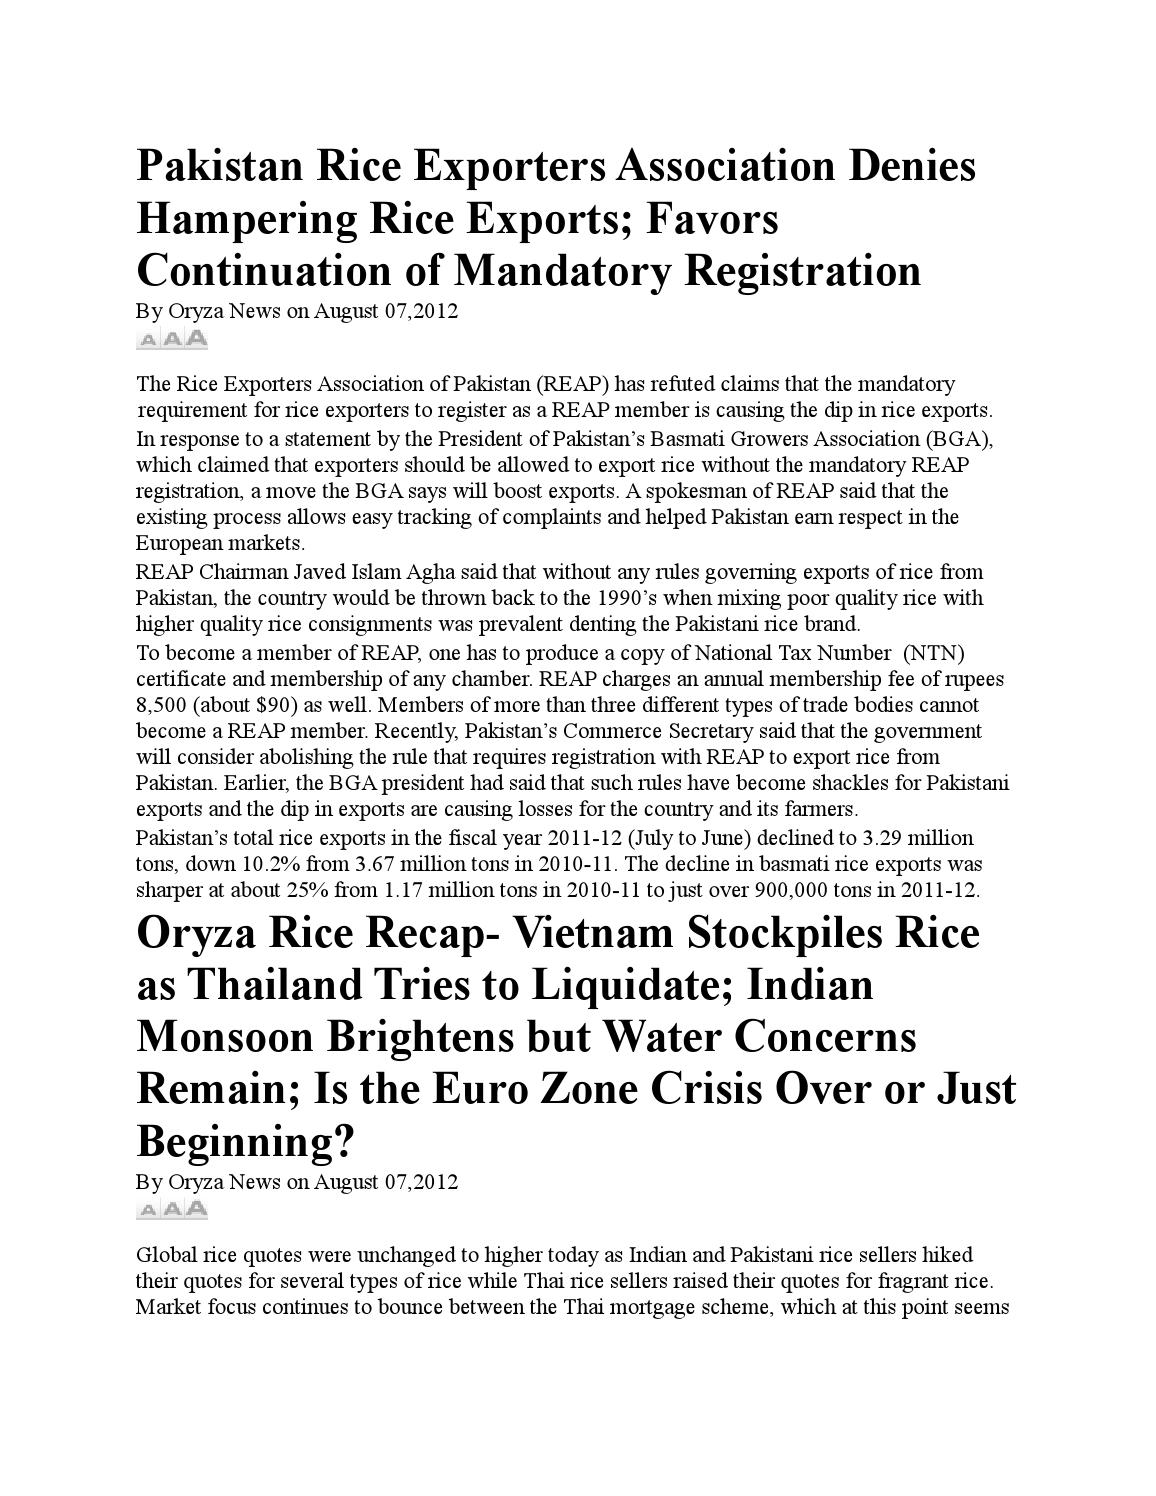 08 08 2012 oryza news updates by Daily Rice E-Newsletters